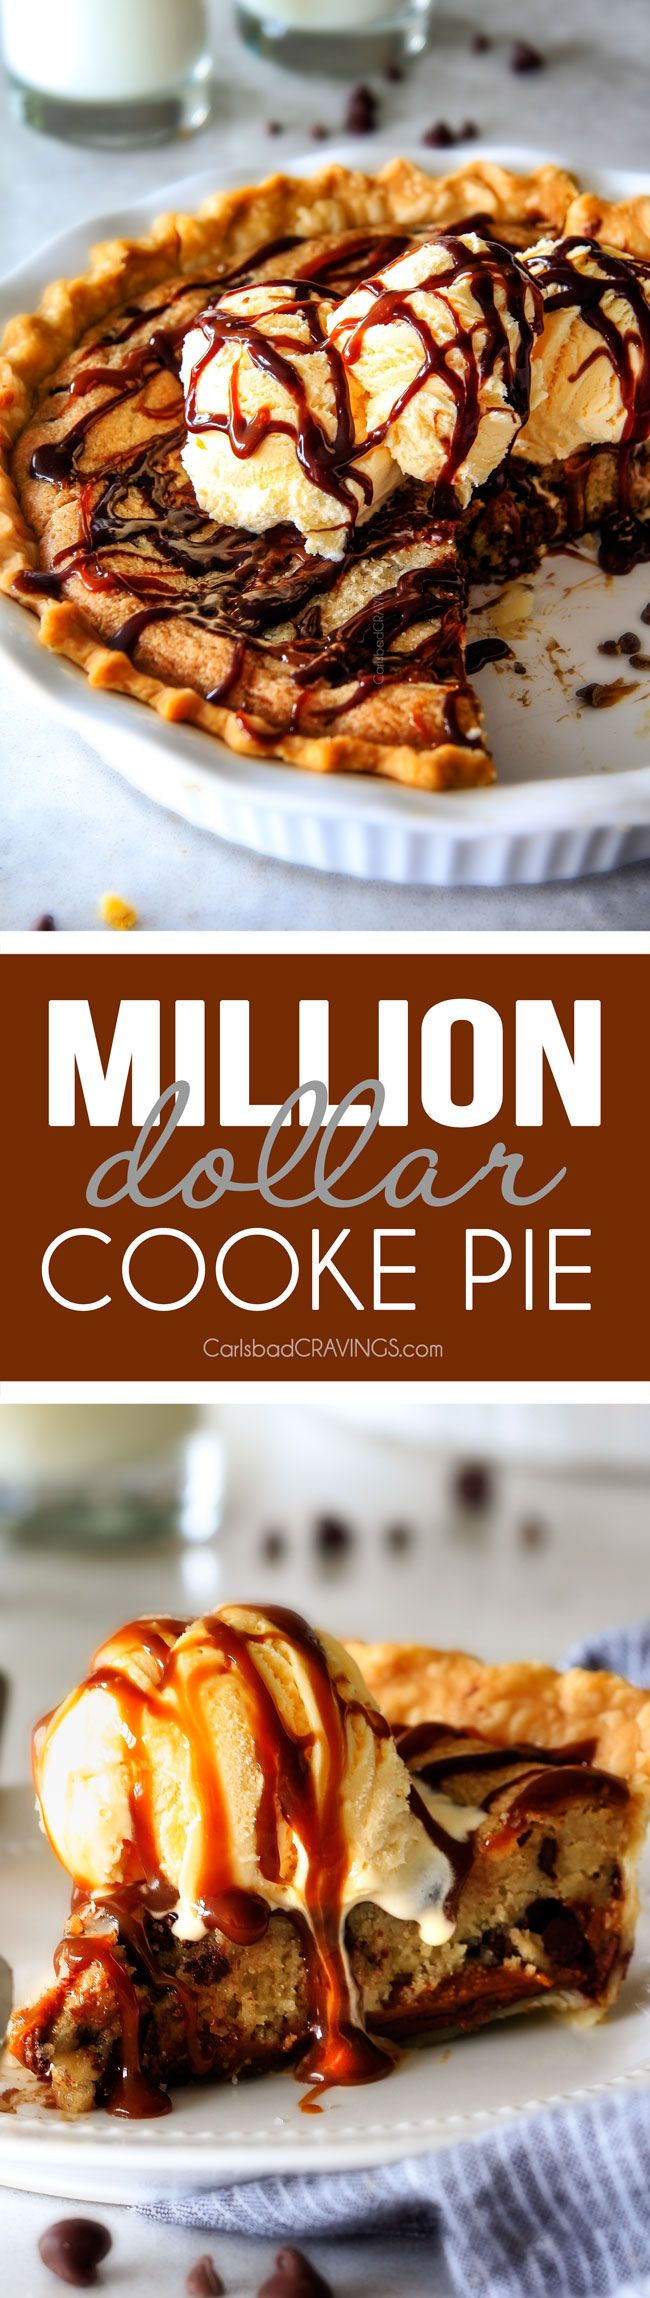 make ahead Million Dollar Cookie Pie layered with Nutella, Dulce de Leche and cookie dough! This is hands down the best skillet cookie I've ever made and its always such a crowd pleaser!